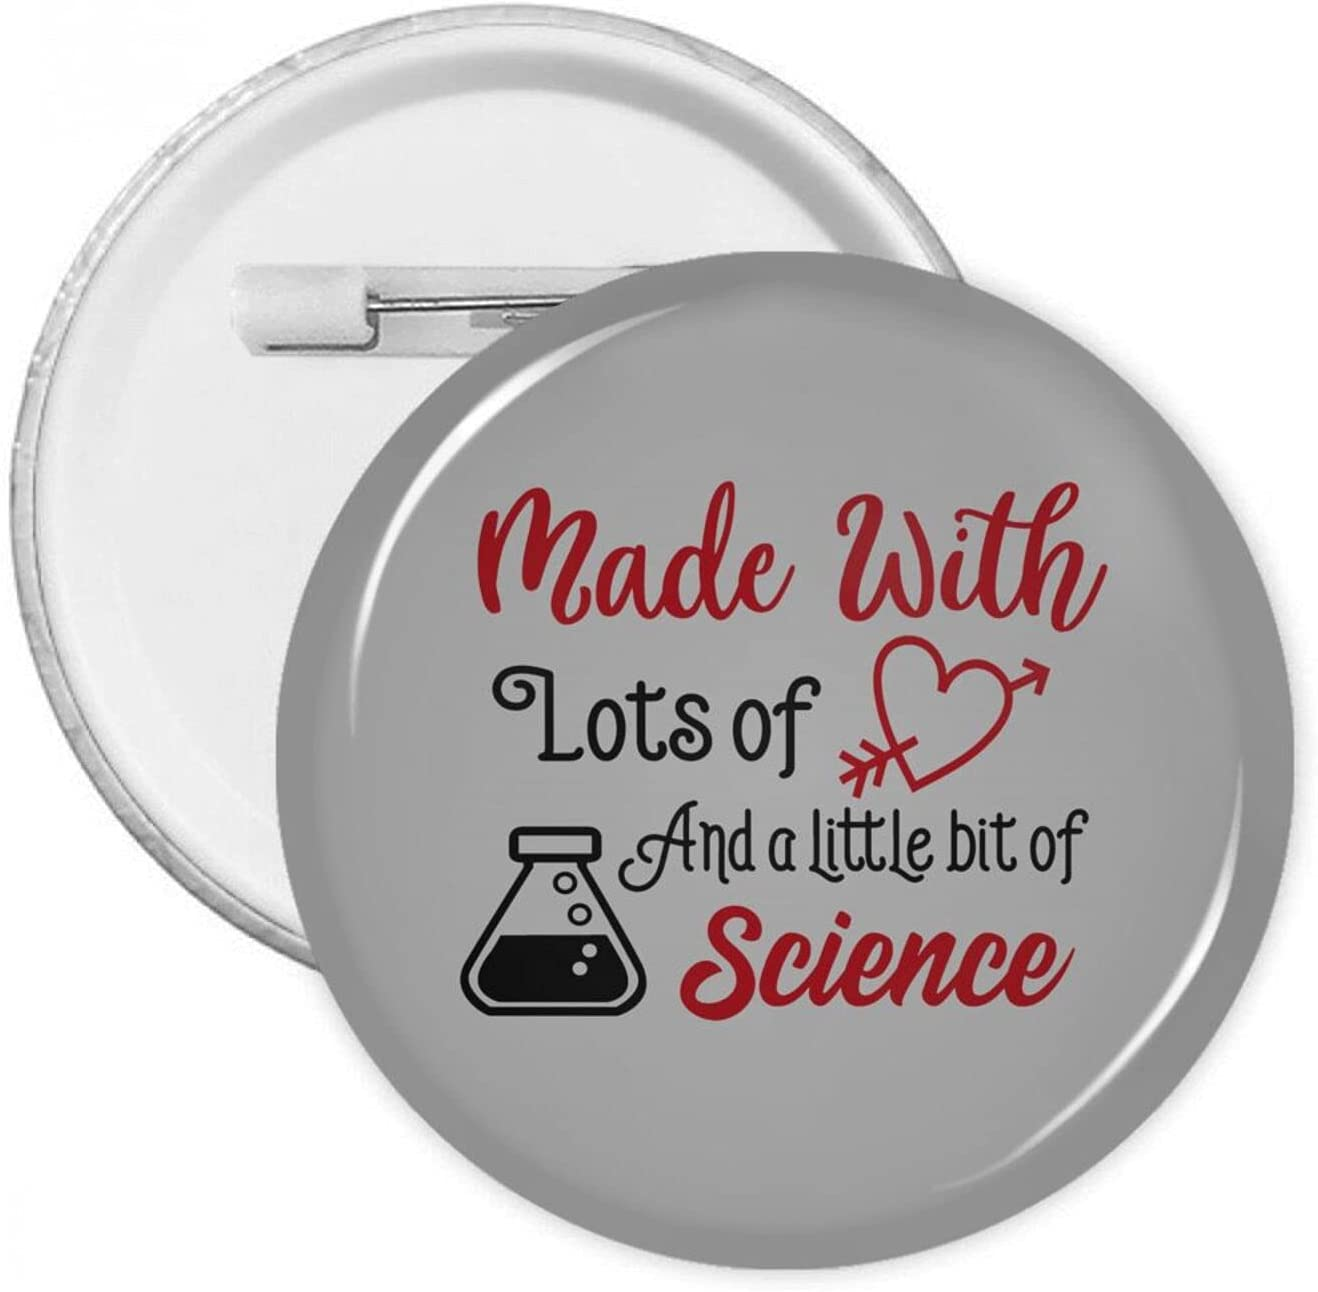 Made with Lots of Love and A Little Bit of Science 1.2/1.8/2.3 Inch Round Pins Brooches Button Medal Tinplate Pins Emblem Adult Children Pin Badges Decor for Backpacks Costume